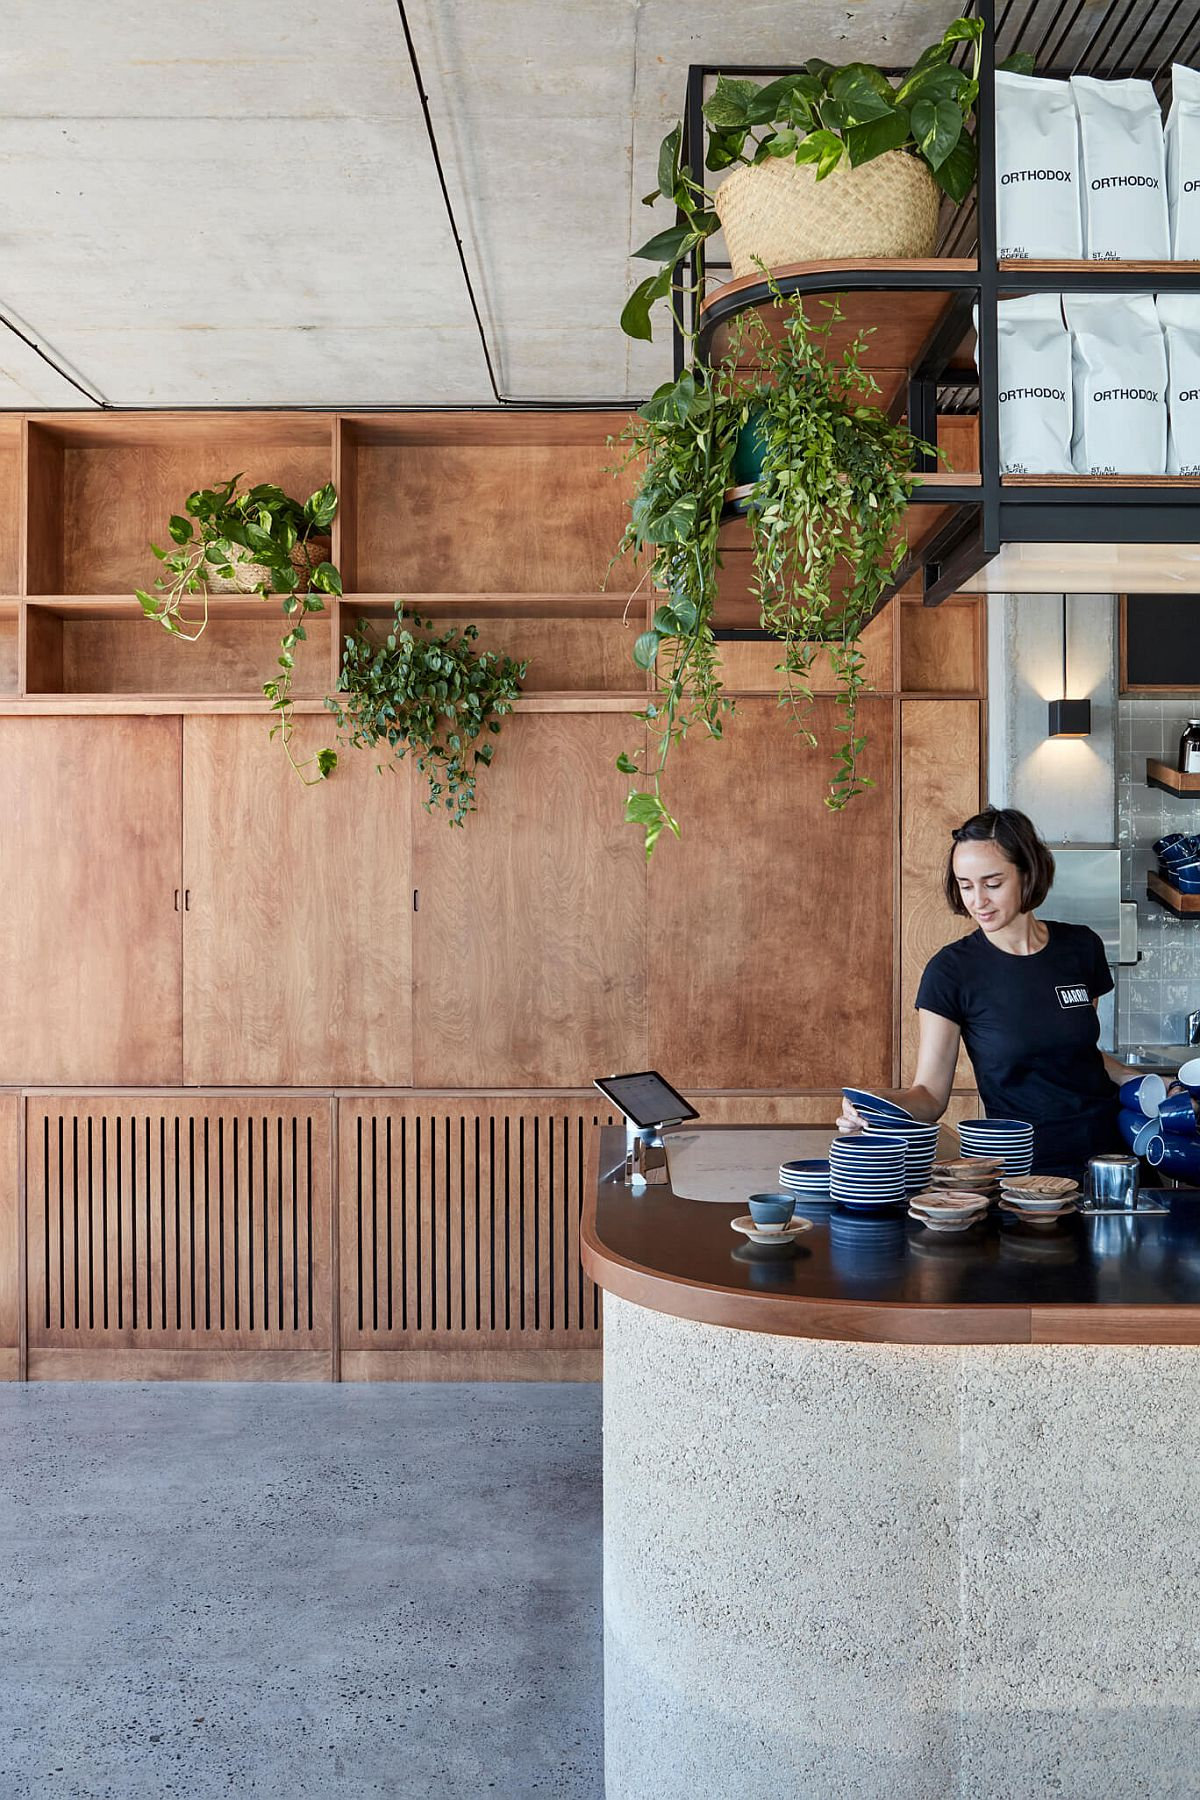 Greenery-brings-life-to-the-raw-concrete-wood-and-rammed-earth-restaurant-interior-58677